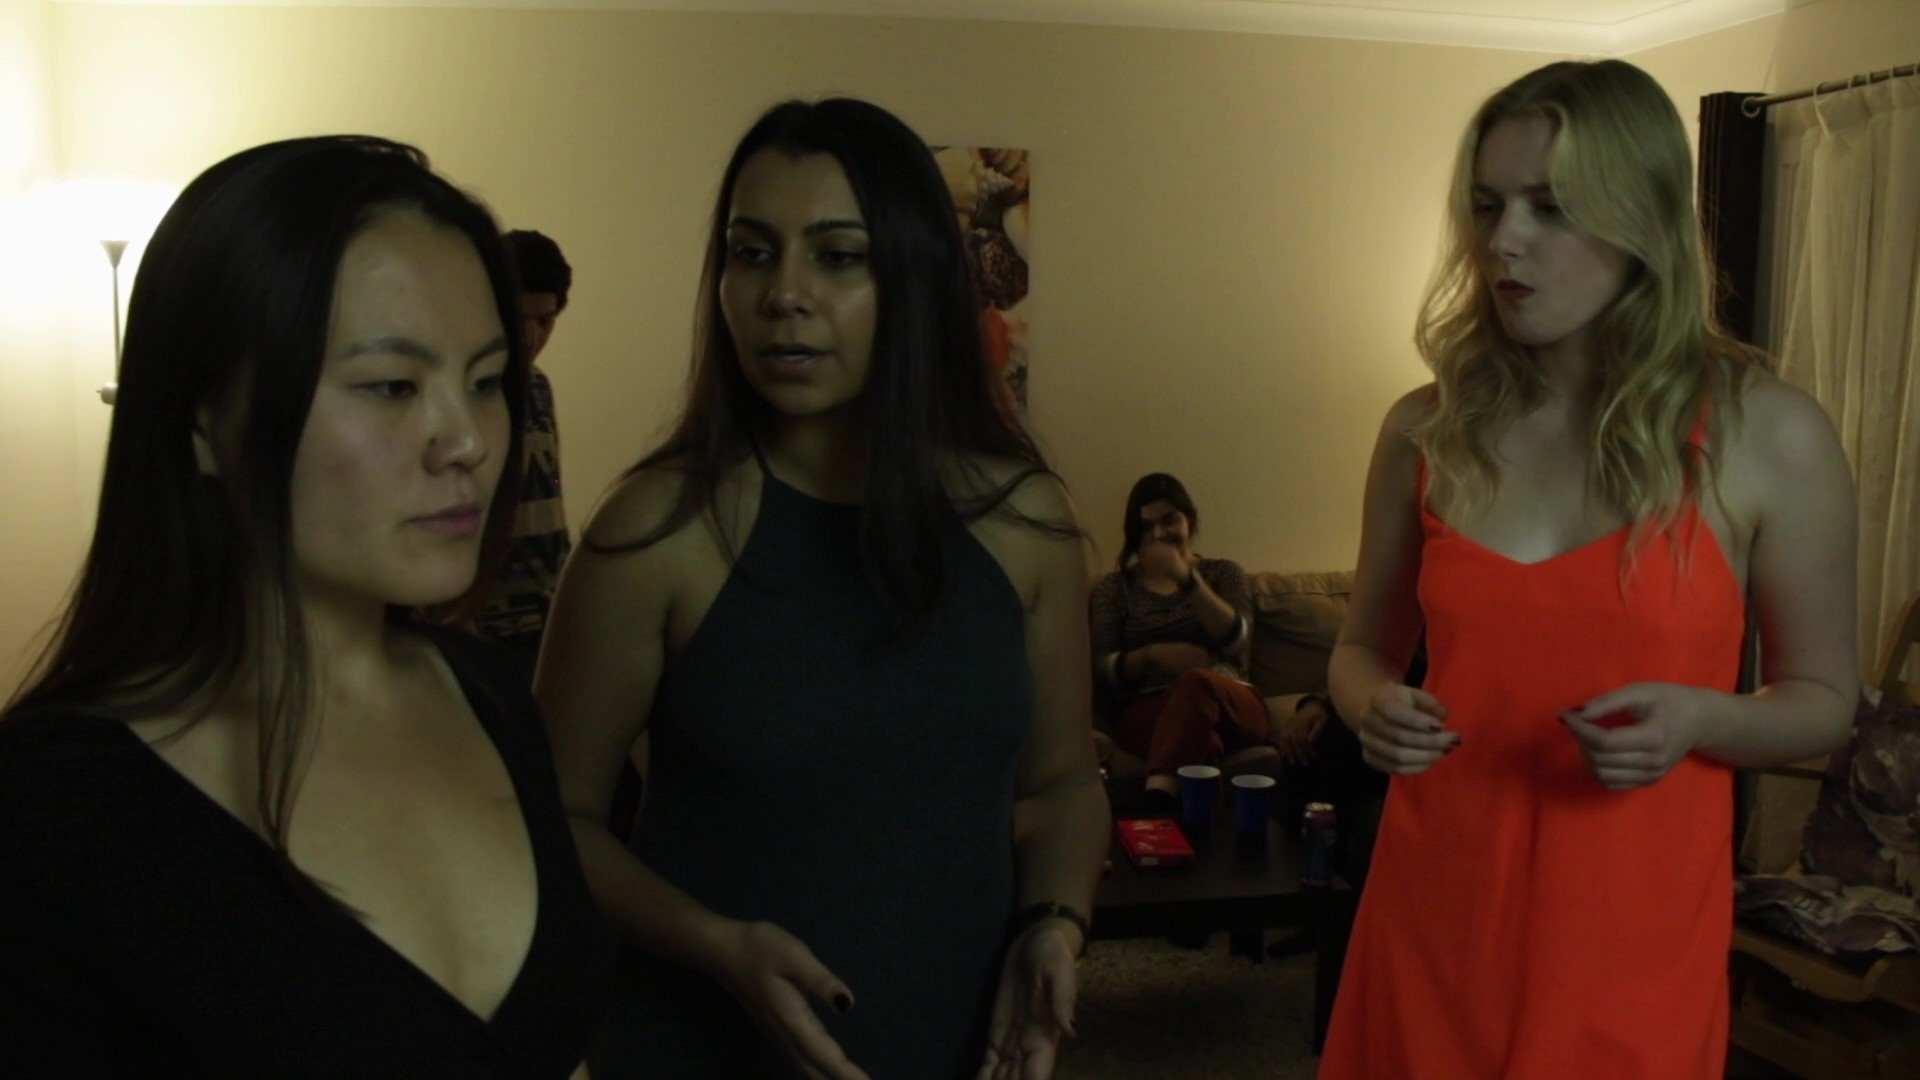 Behind the Scene (7:00)  Rahim Bahrami & Brian Briggs  Three young girls are secretly sex-workers because of financial situation. One of them has her problems solved and wants to leave the group, but can she forget her dark past?